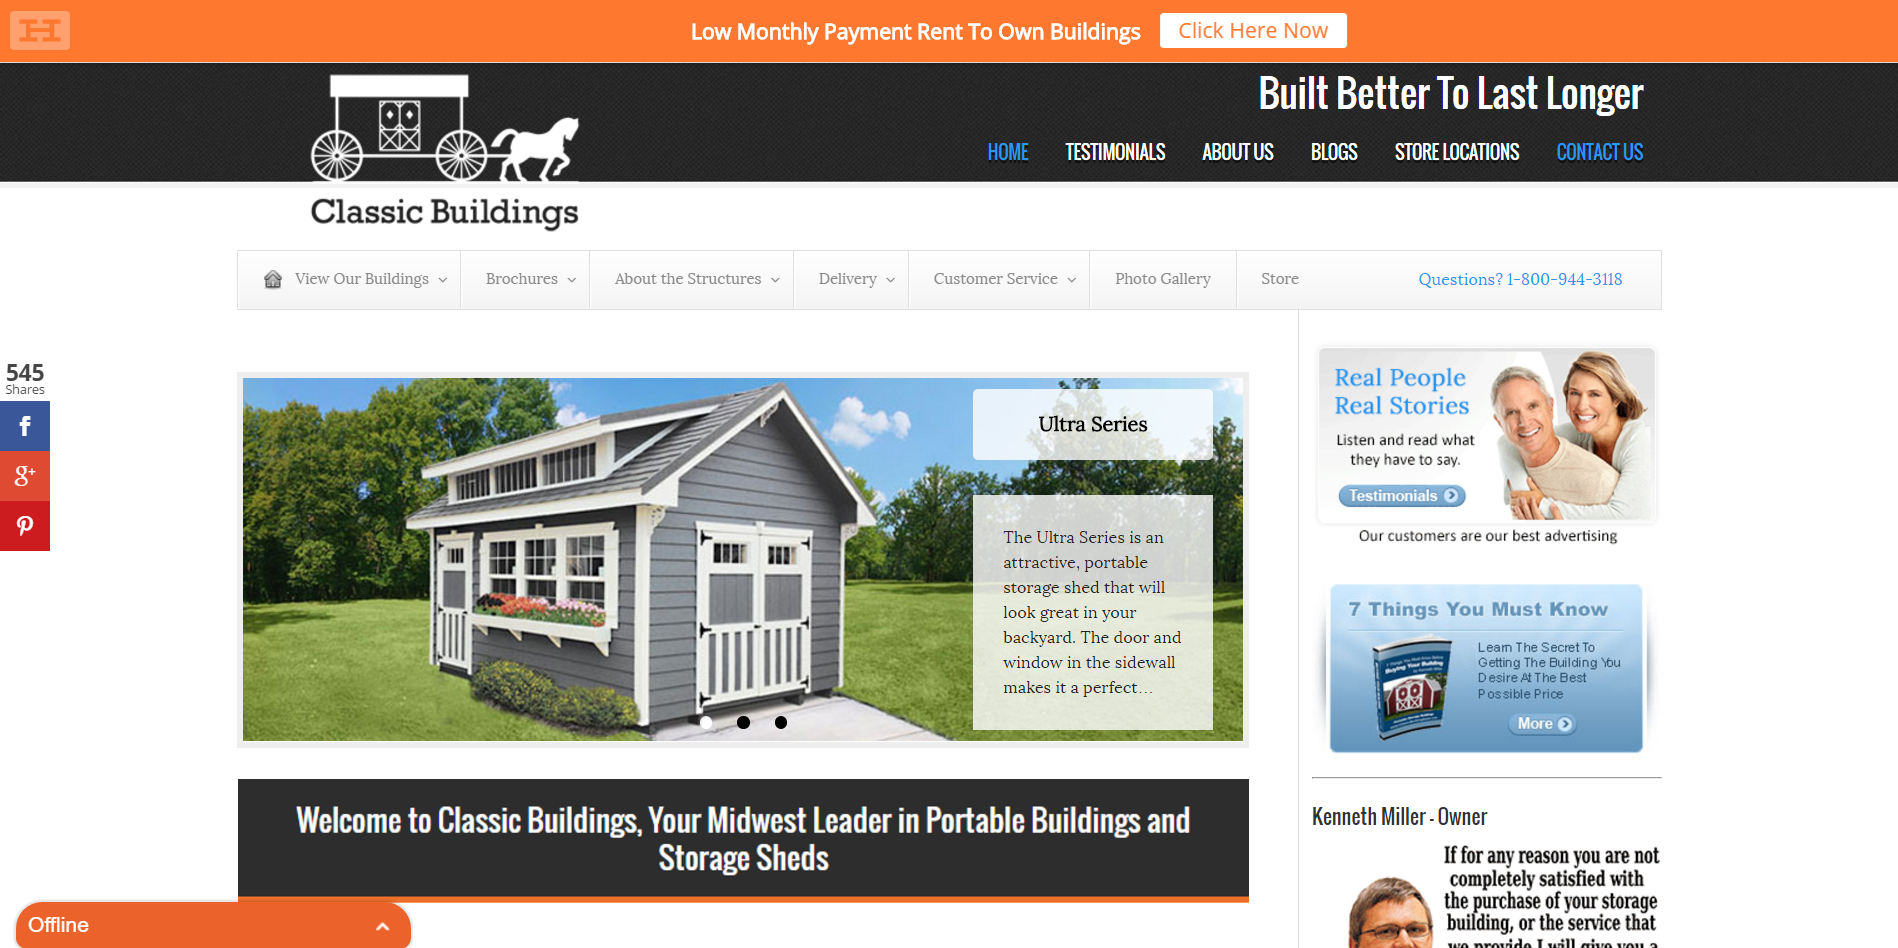 home page AB testing